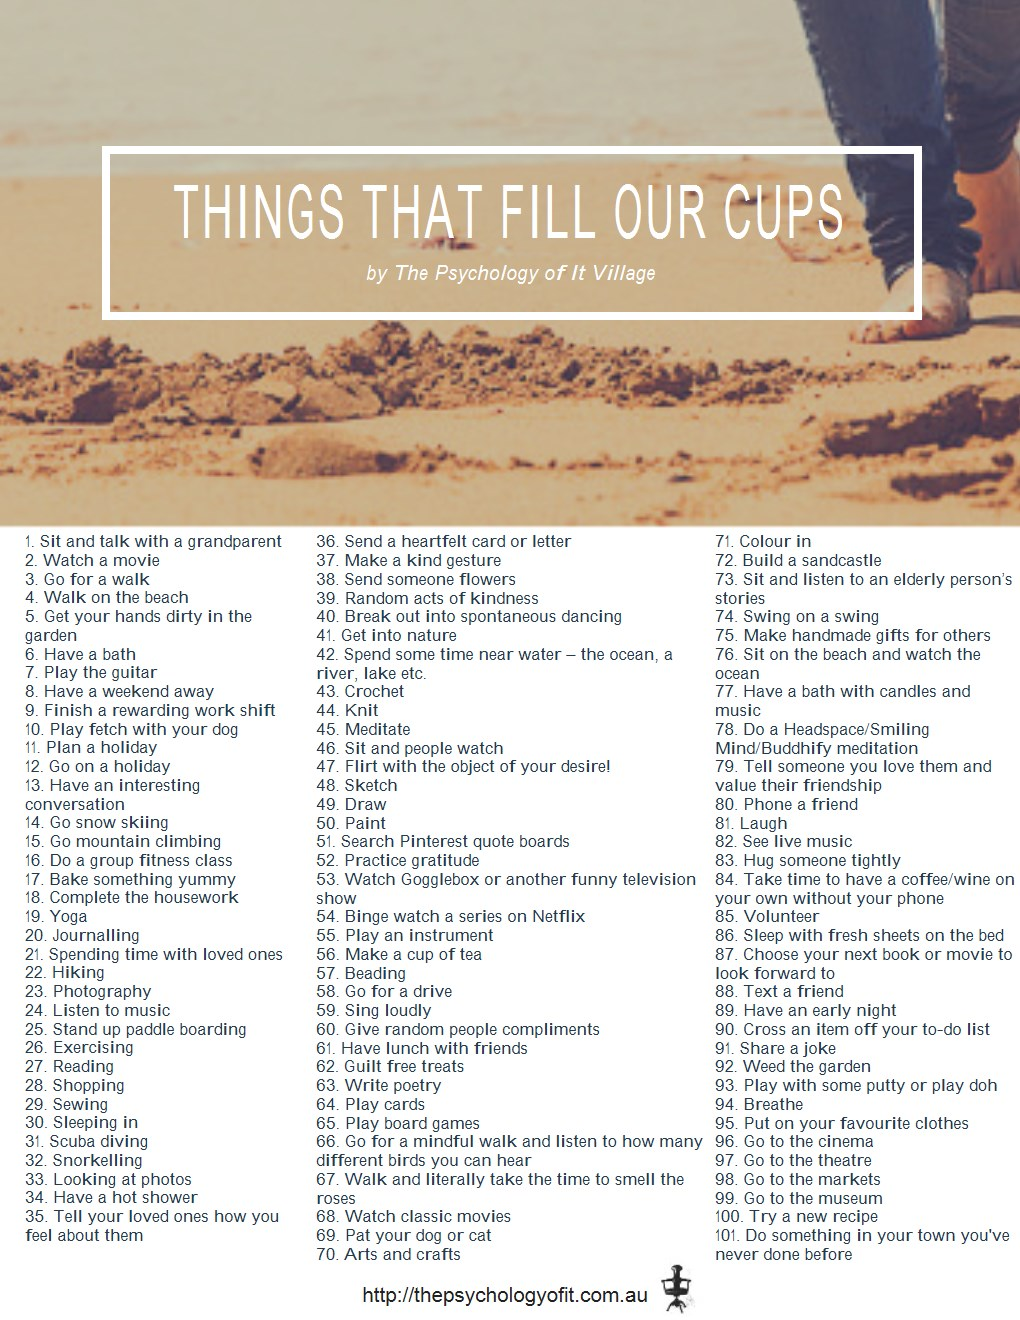 Things that fill our cups jpg